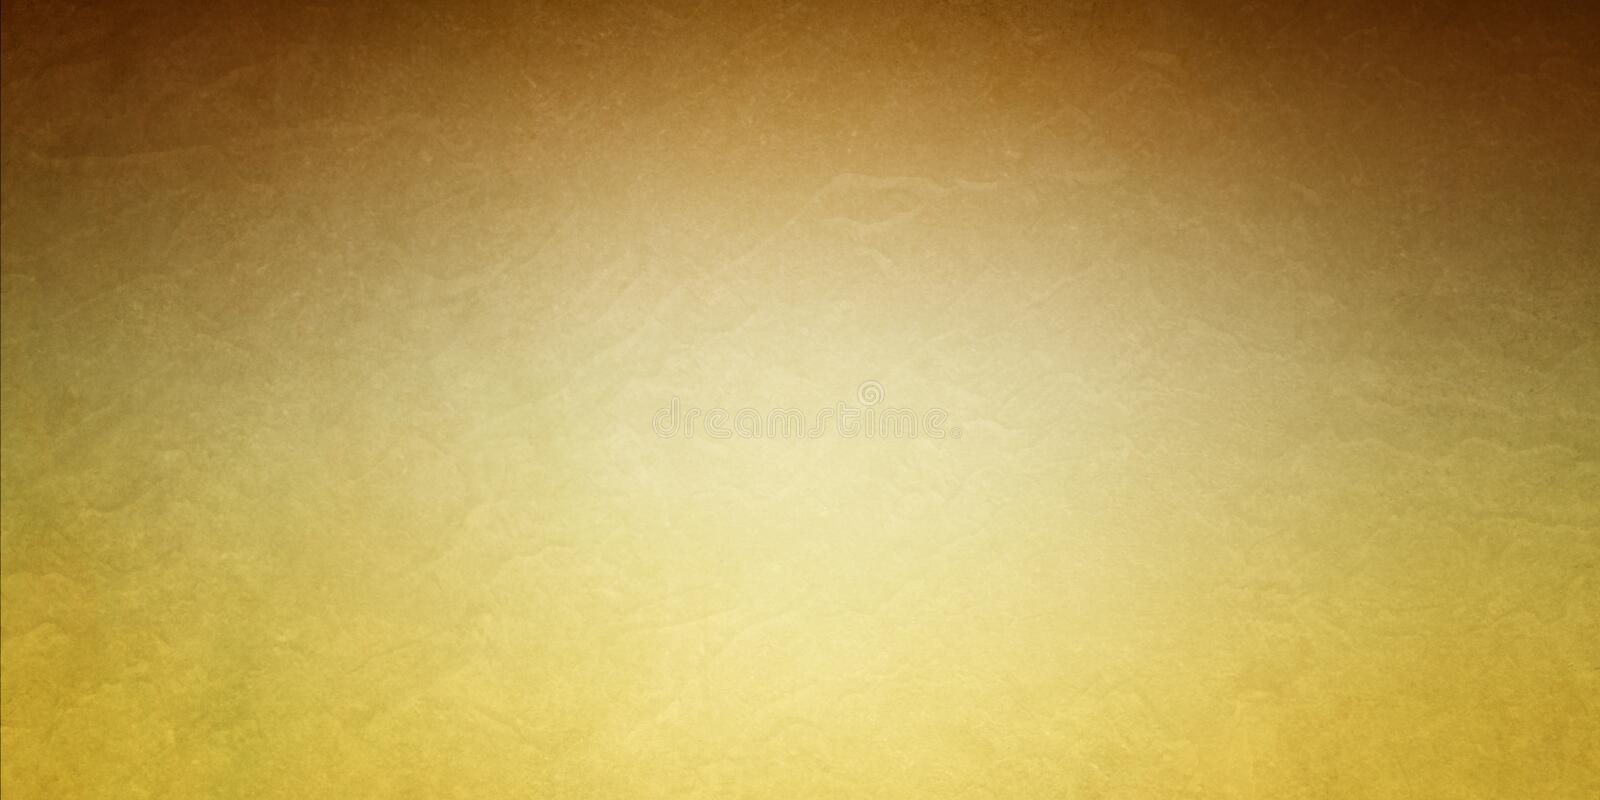 Gold background with brown border and bright center with old vintage texture royalty free illustration